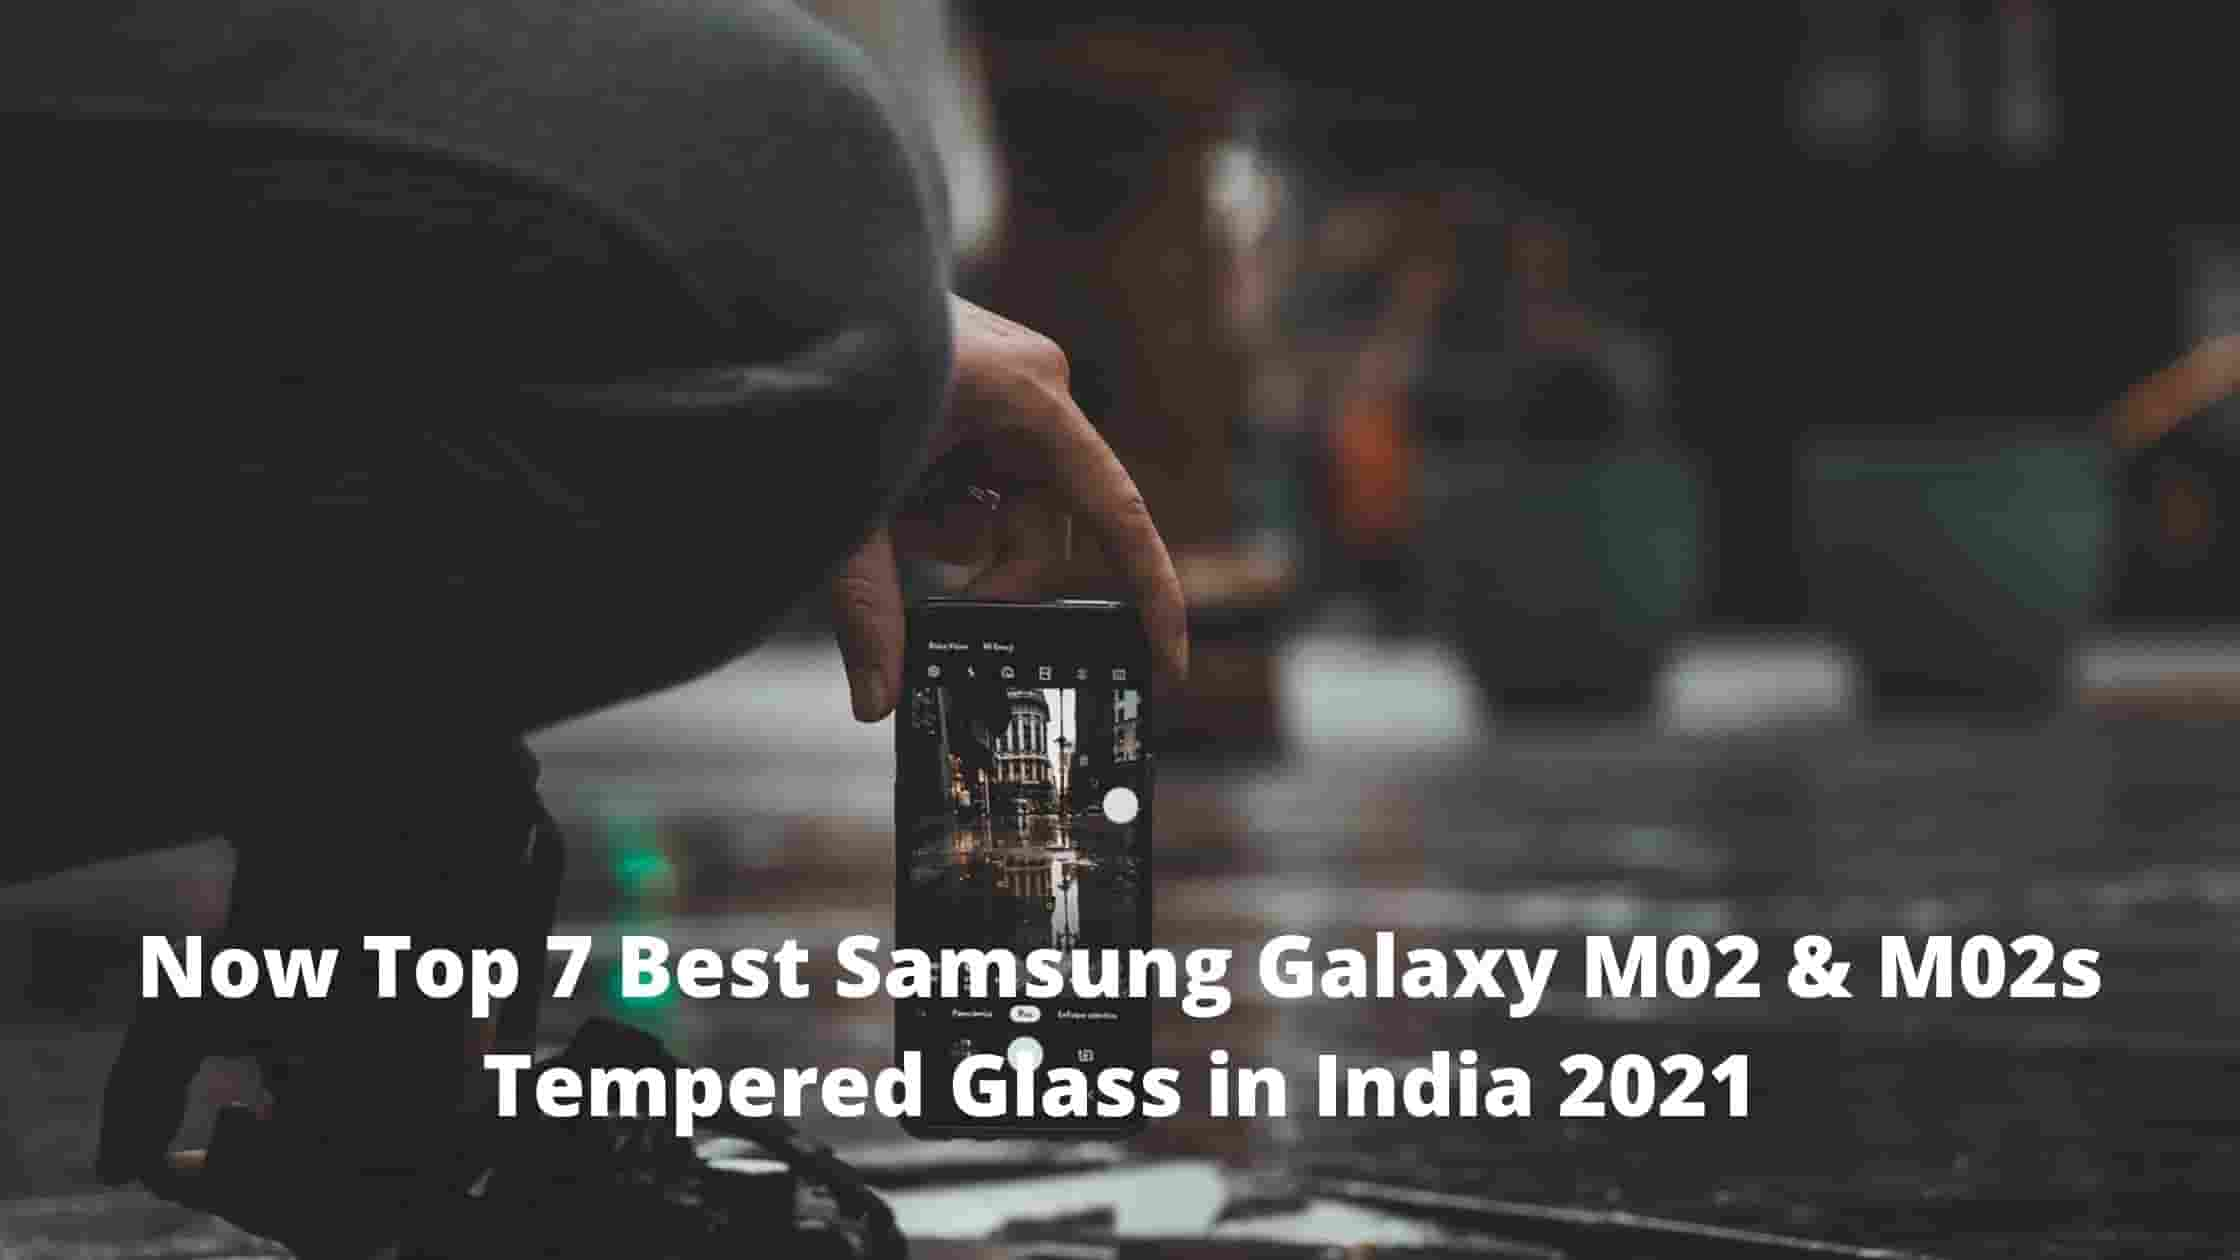 Now Top 7 Best Samsung Galaxy M02 & M02s Tempered Glass in India 2021 [Bengali]